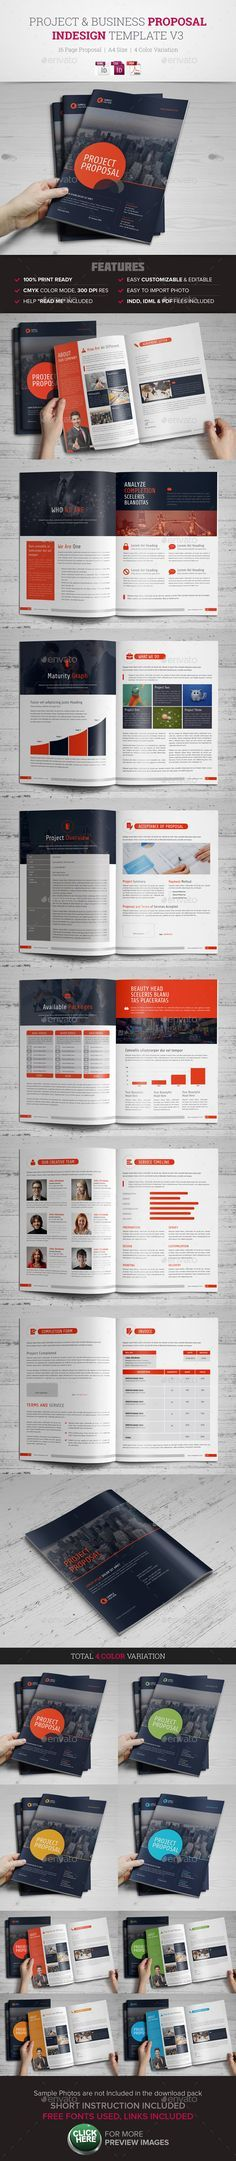 The 25+ best Business proposal template ideas on Pinterest - project proposal word template